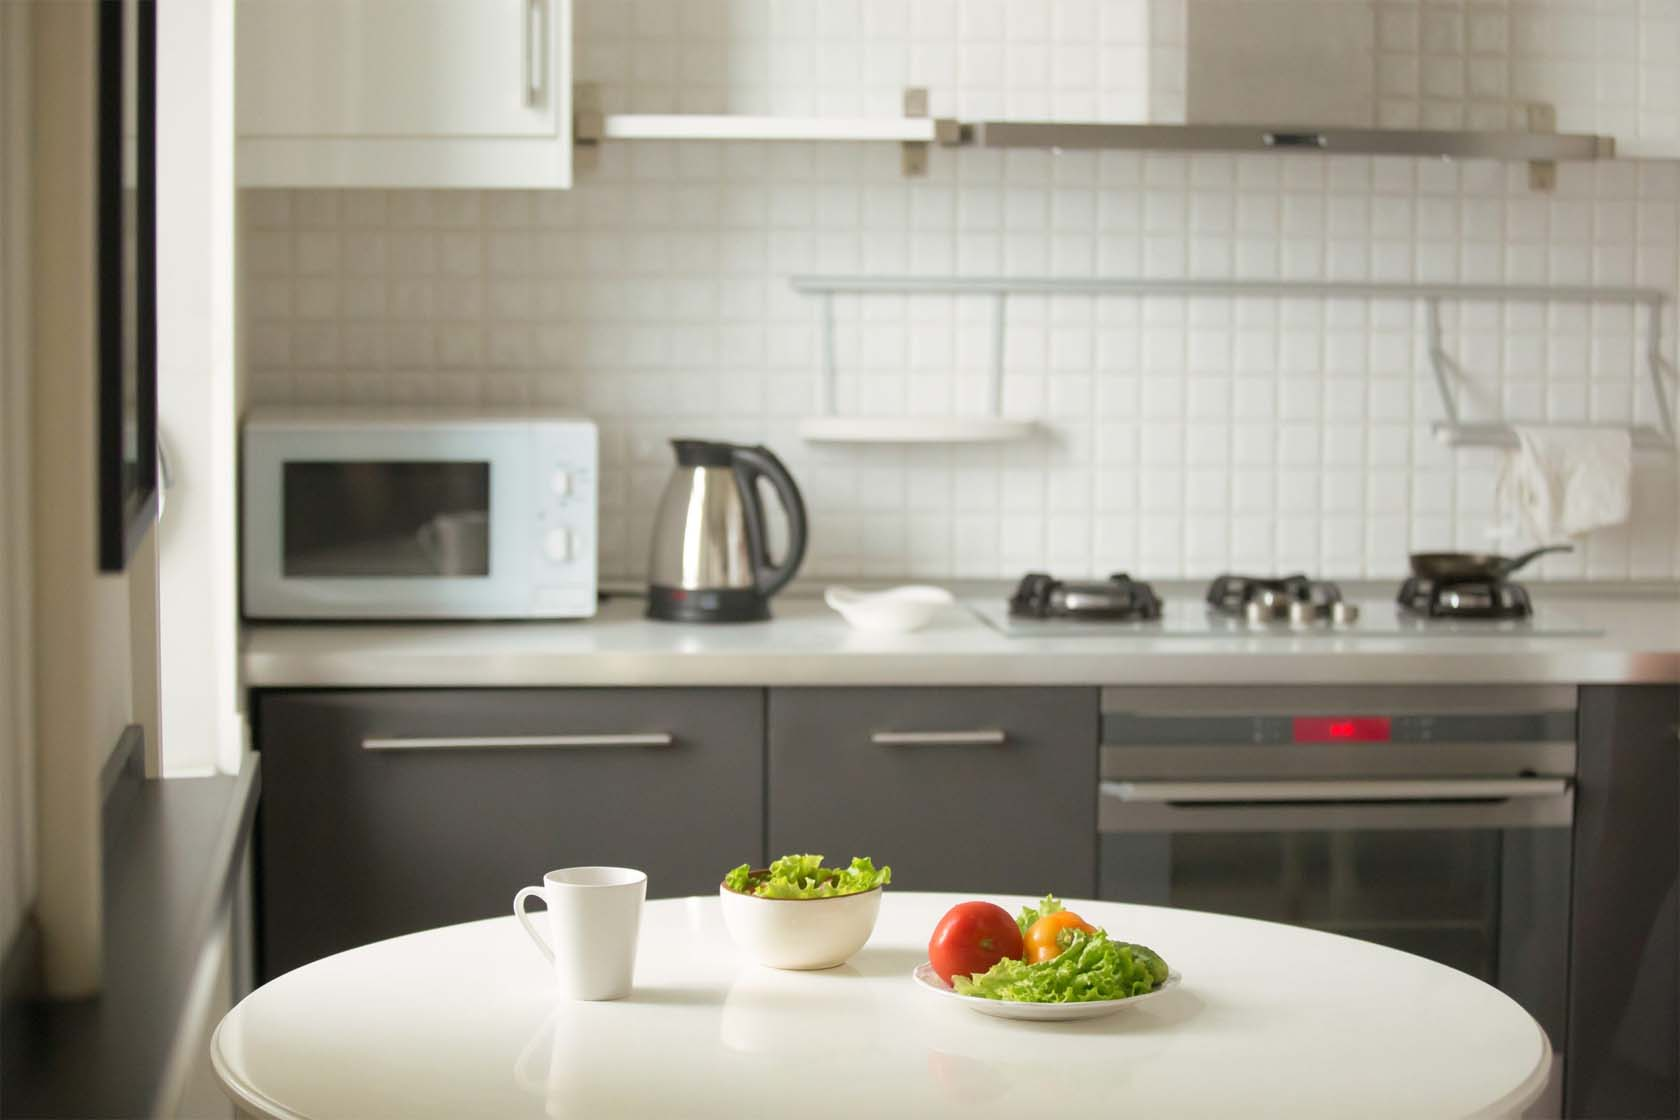 How To Select The Best Mini Microwave